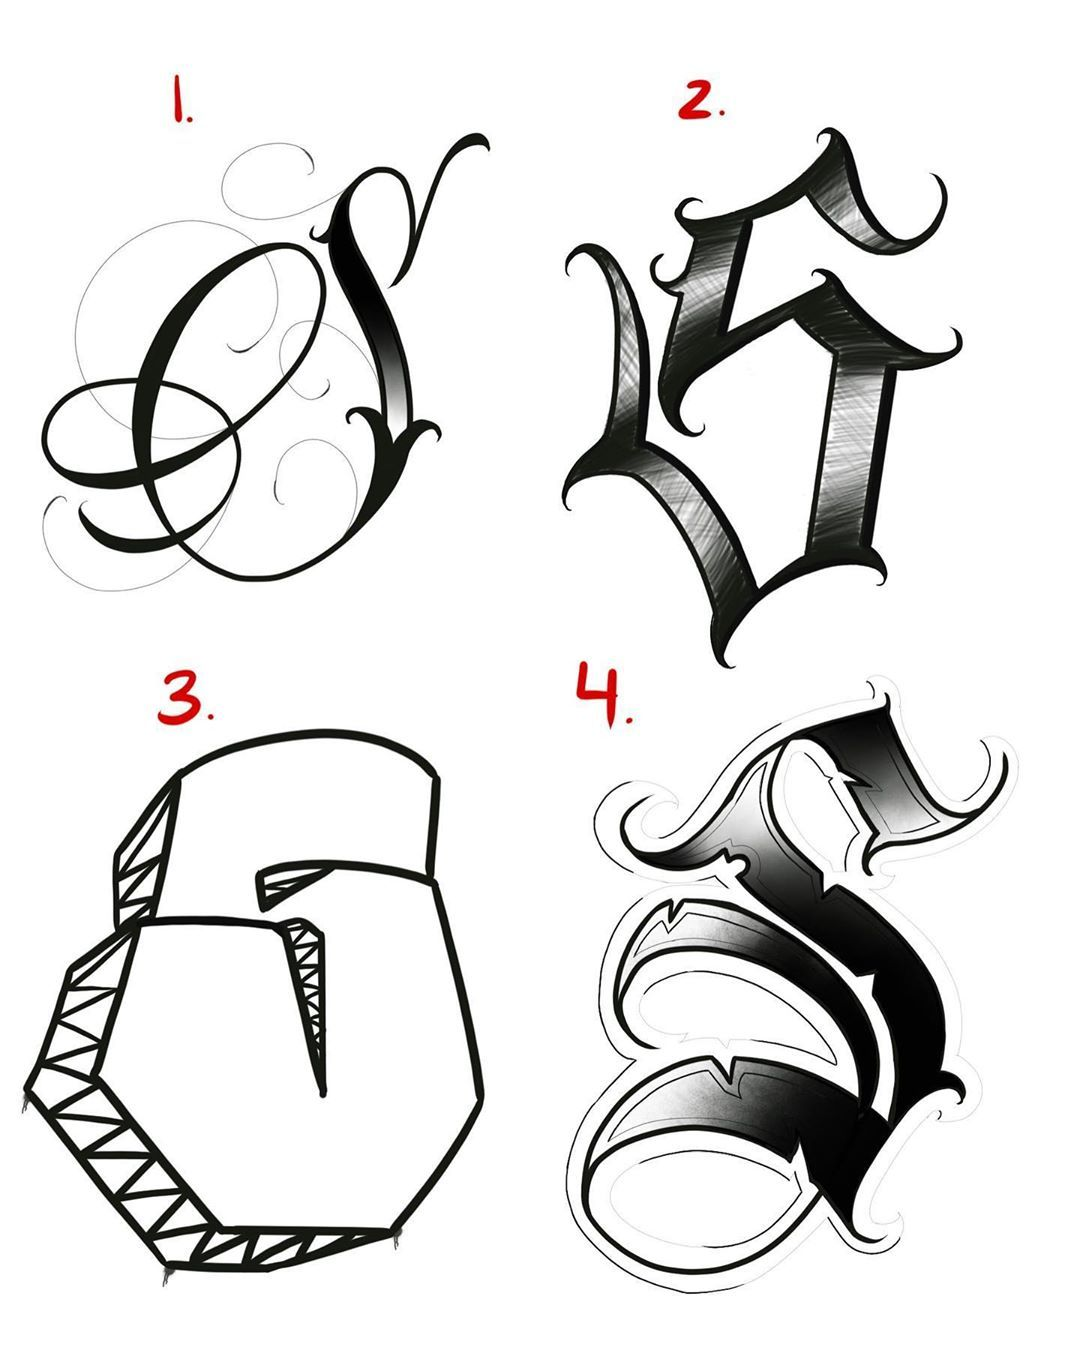 """rivera_1989 """"4 different ways to write the letter """"S"""